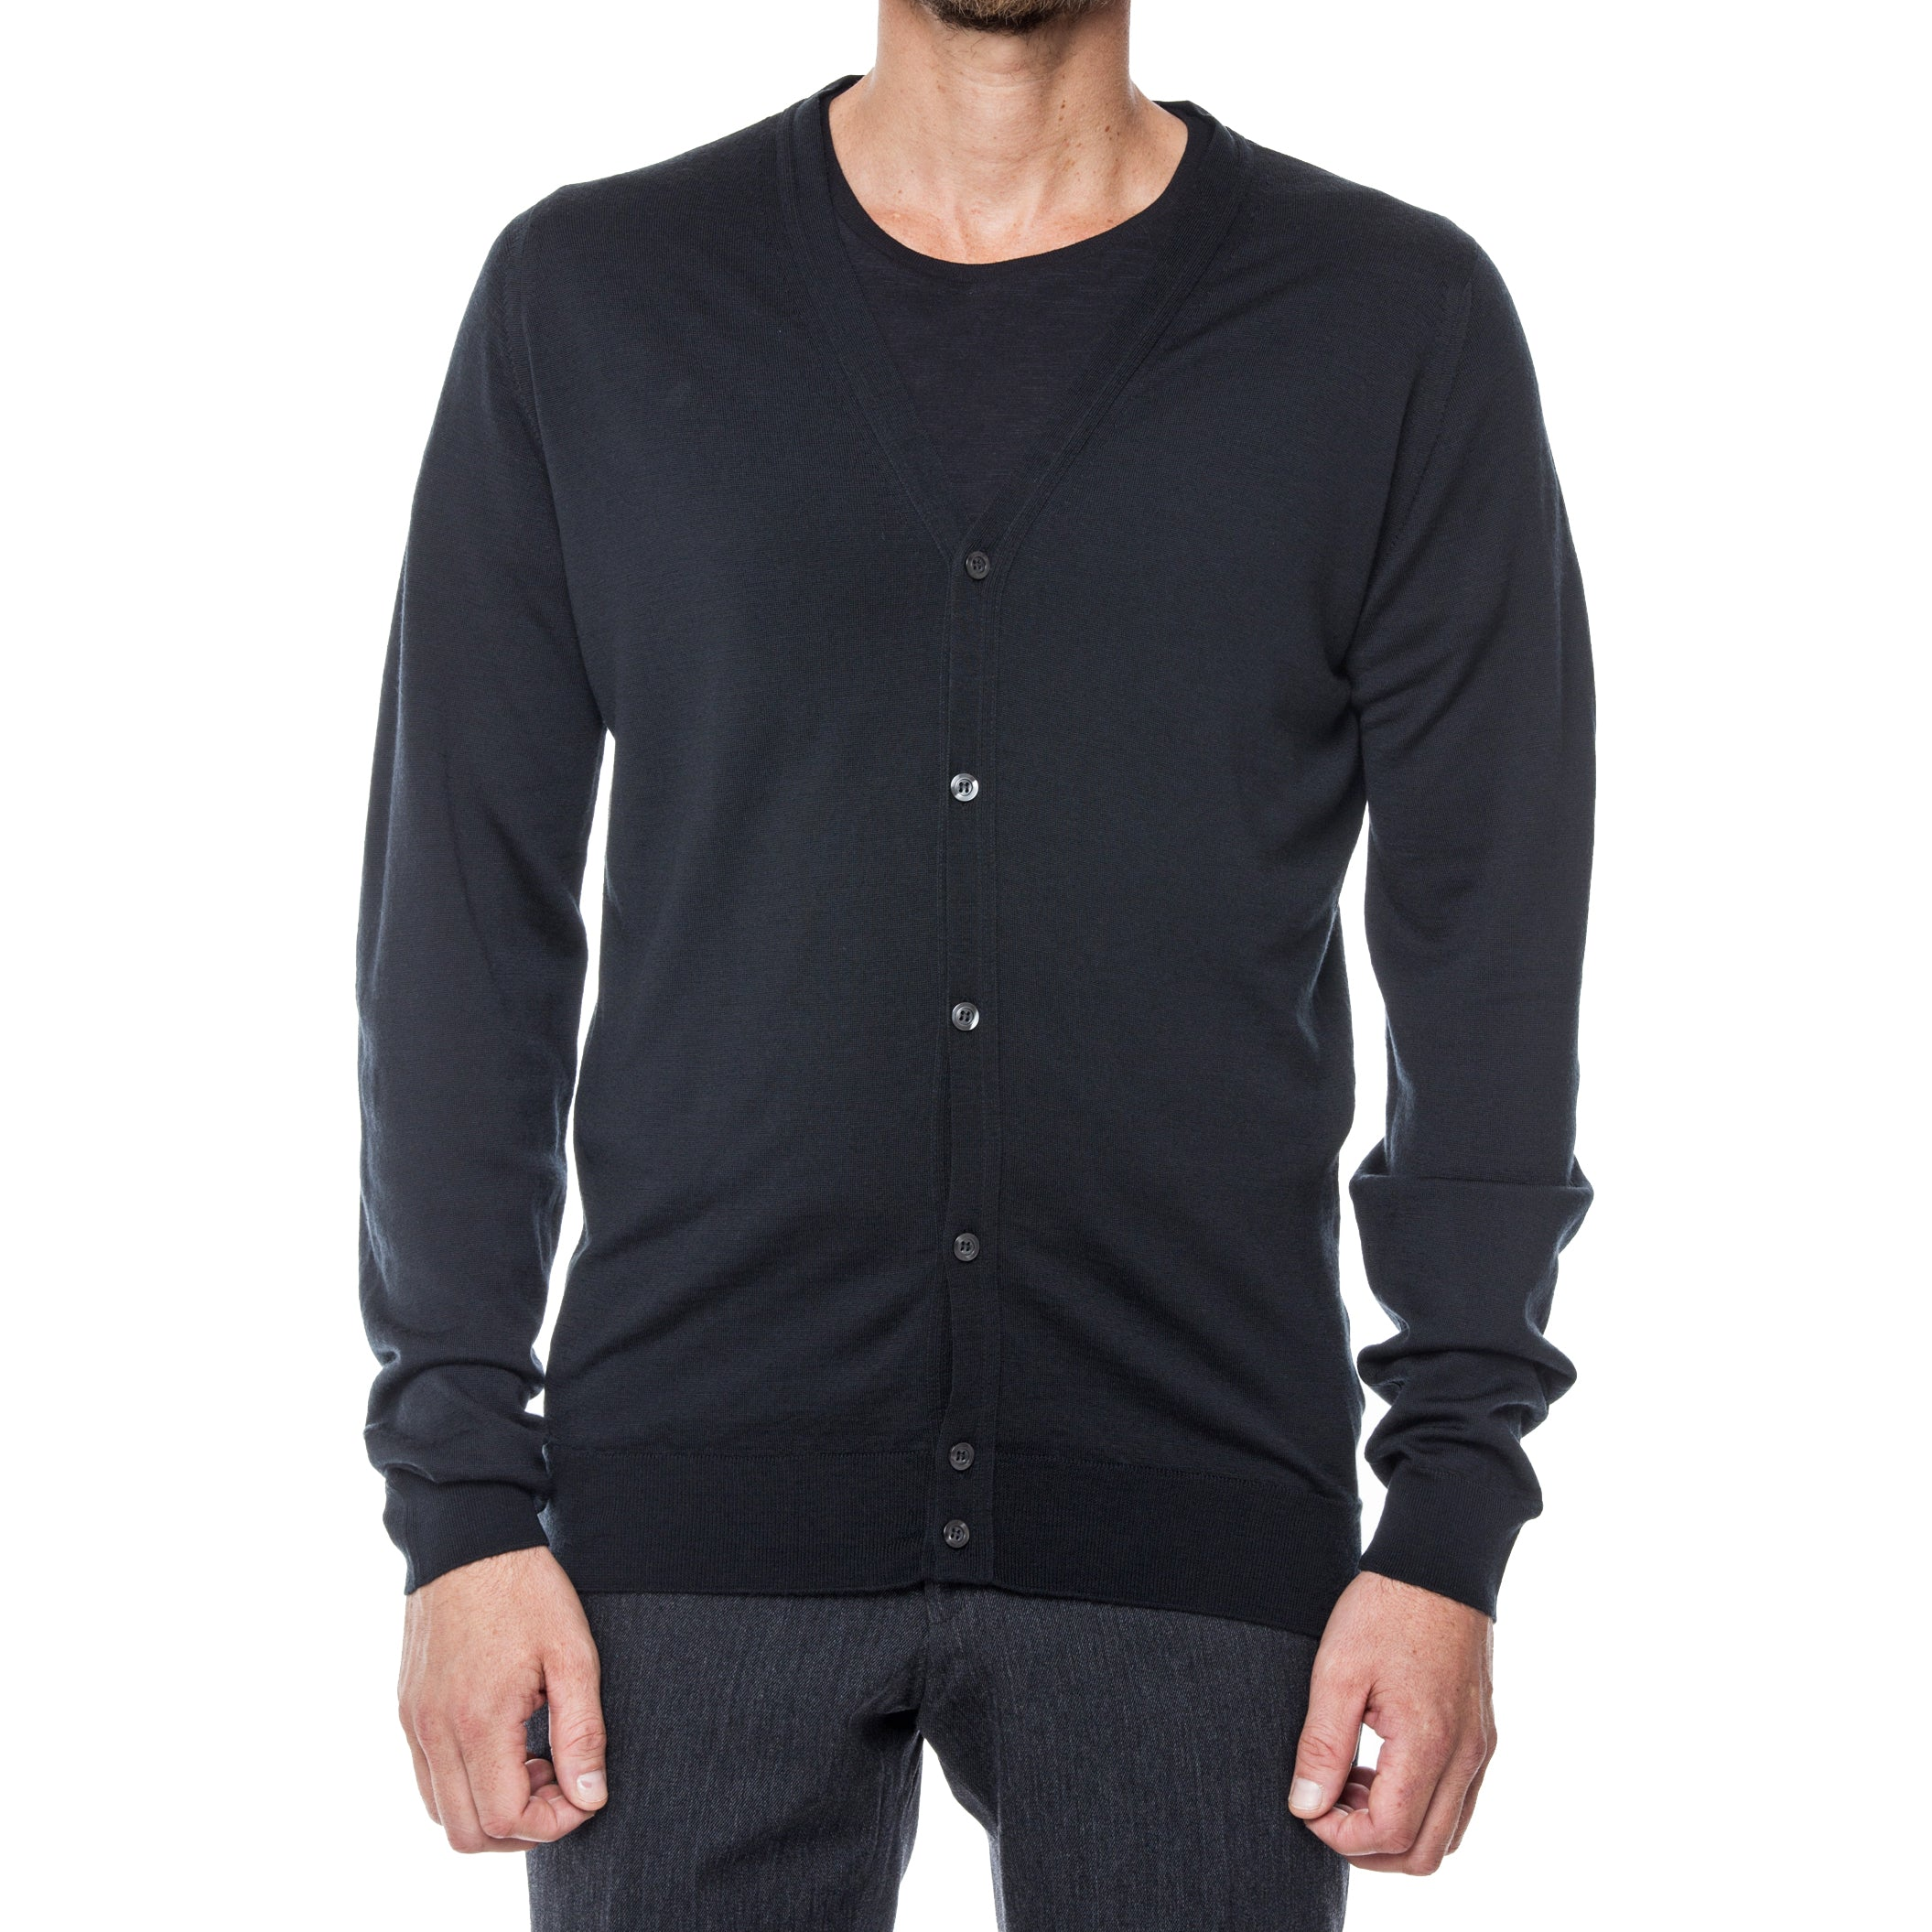 Black Merino Wool Cardigan Sweater